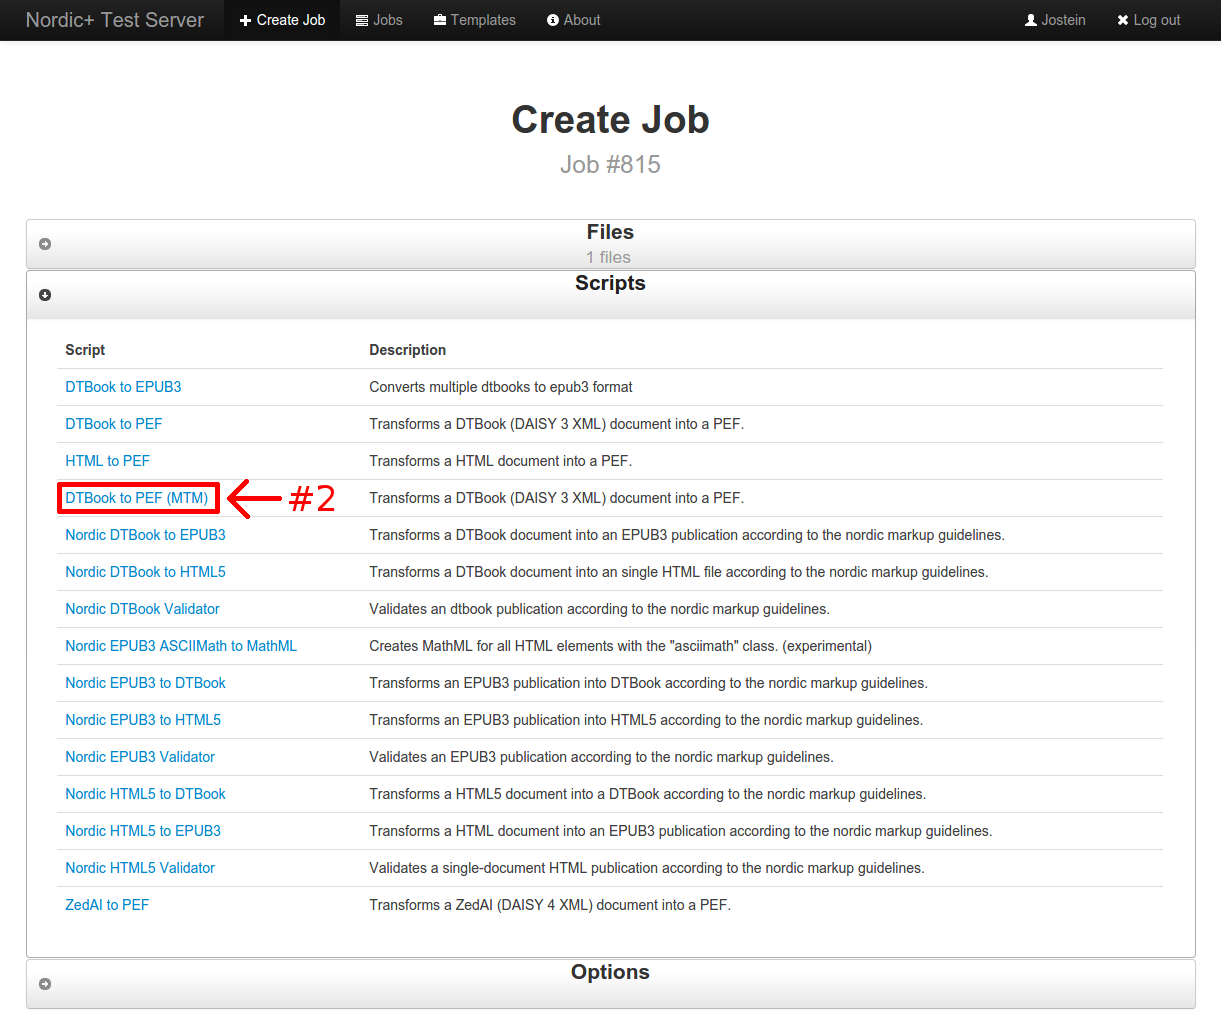 screenshot of the script listing when creating a job